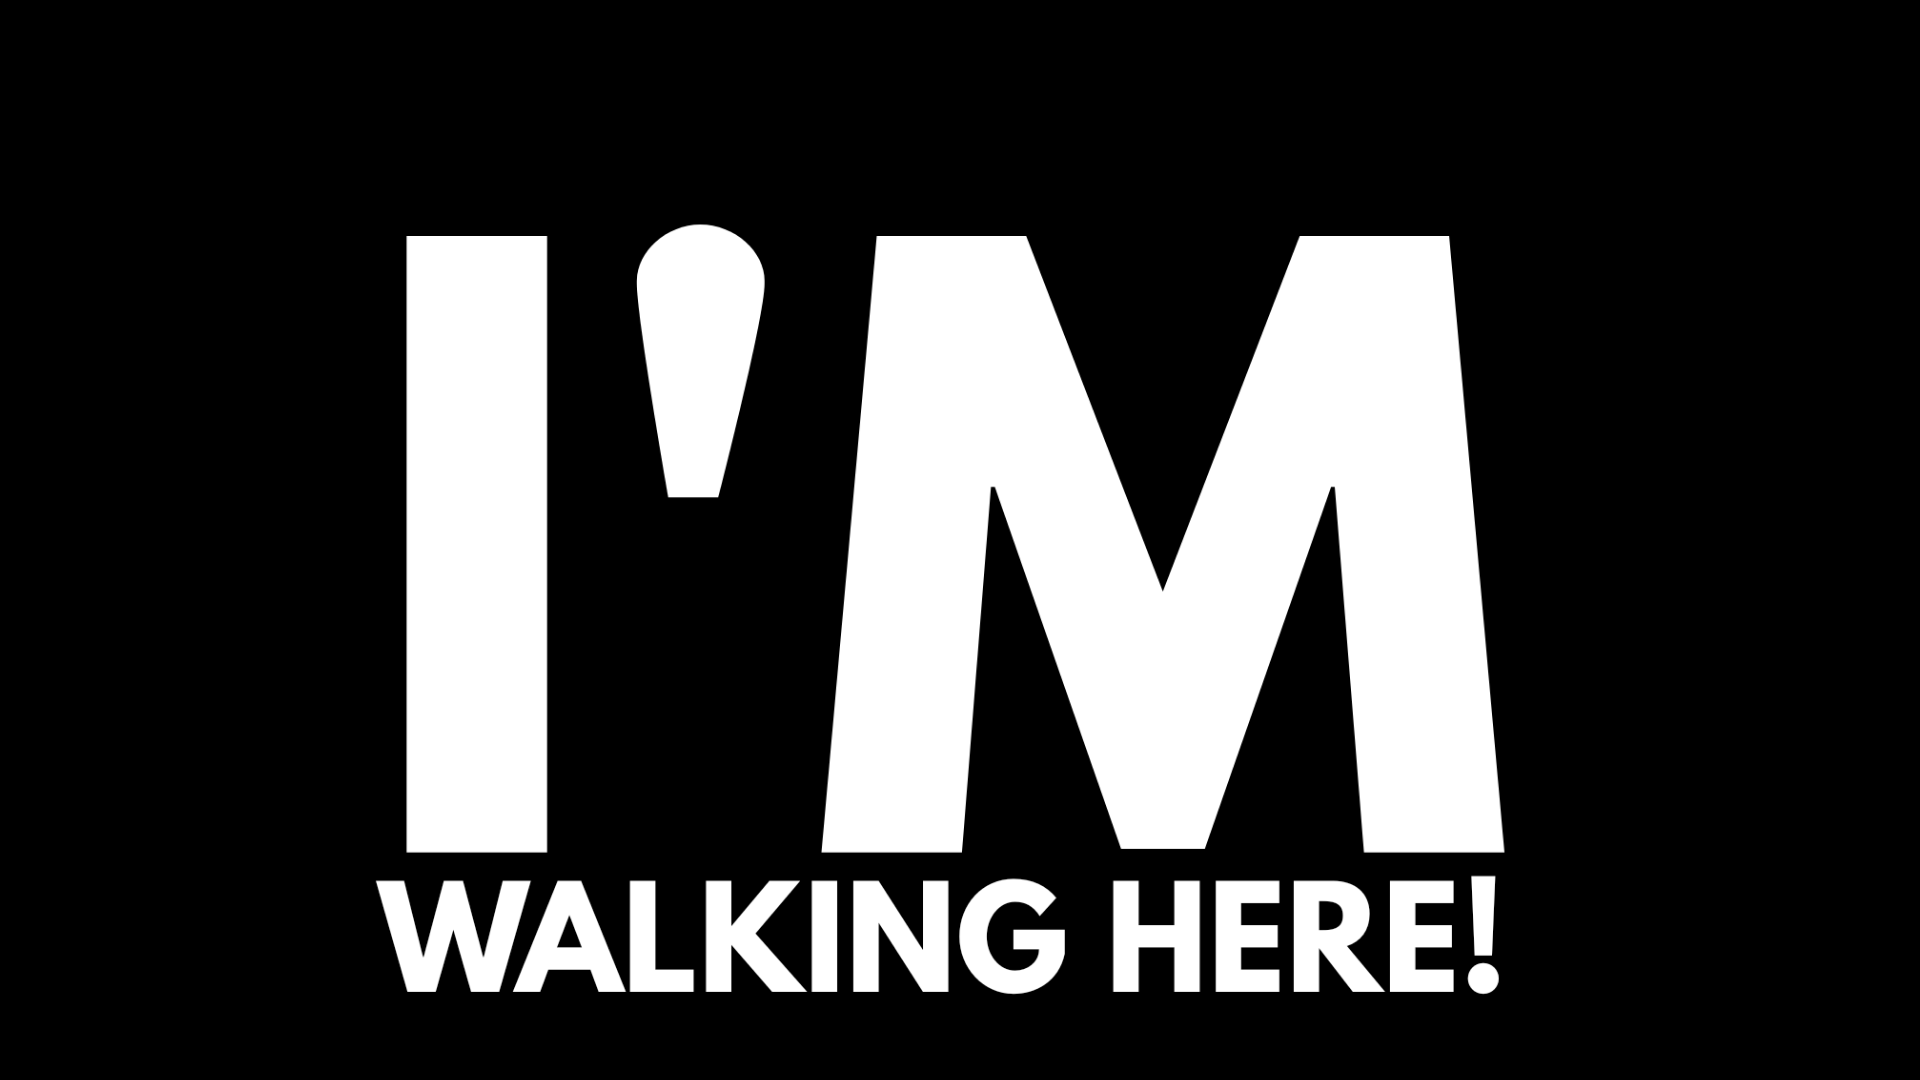 I'm Walking Here Creative HD Wallpaper